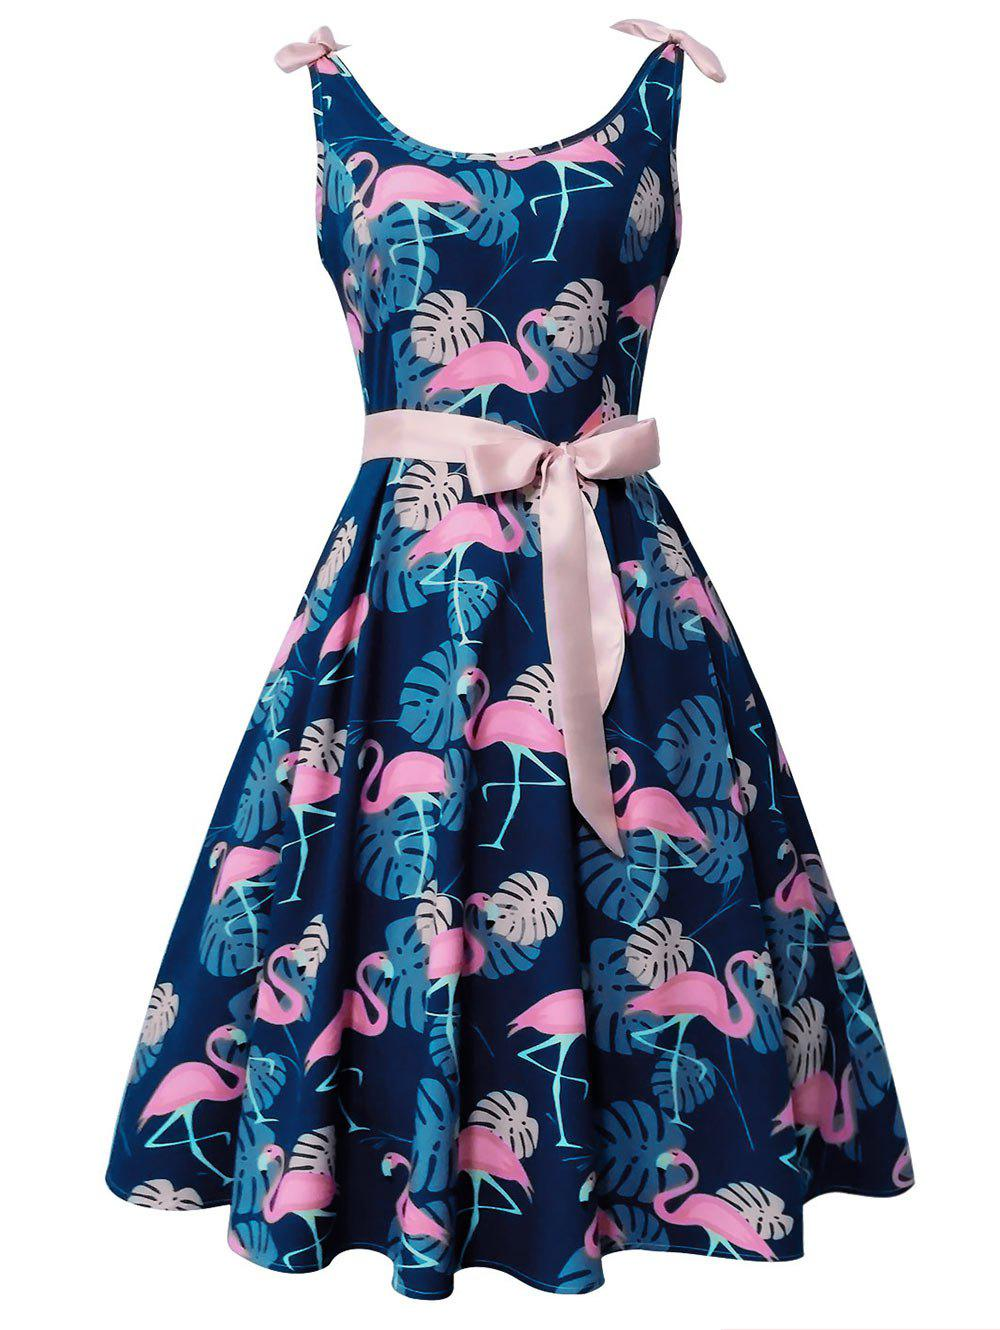 Affordable Flamingo and Monstera Print Vintage Cocktail Dress